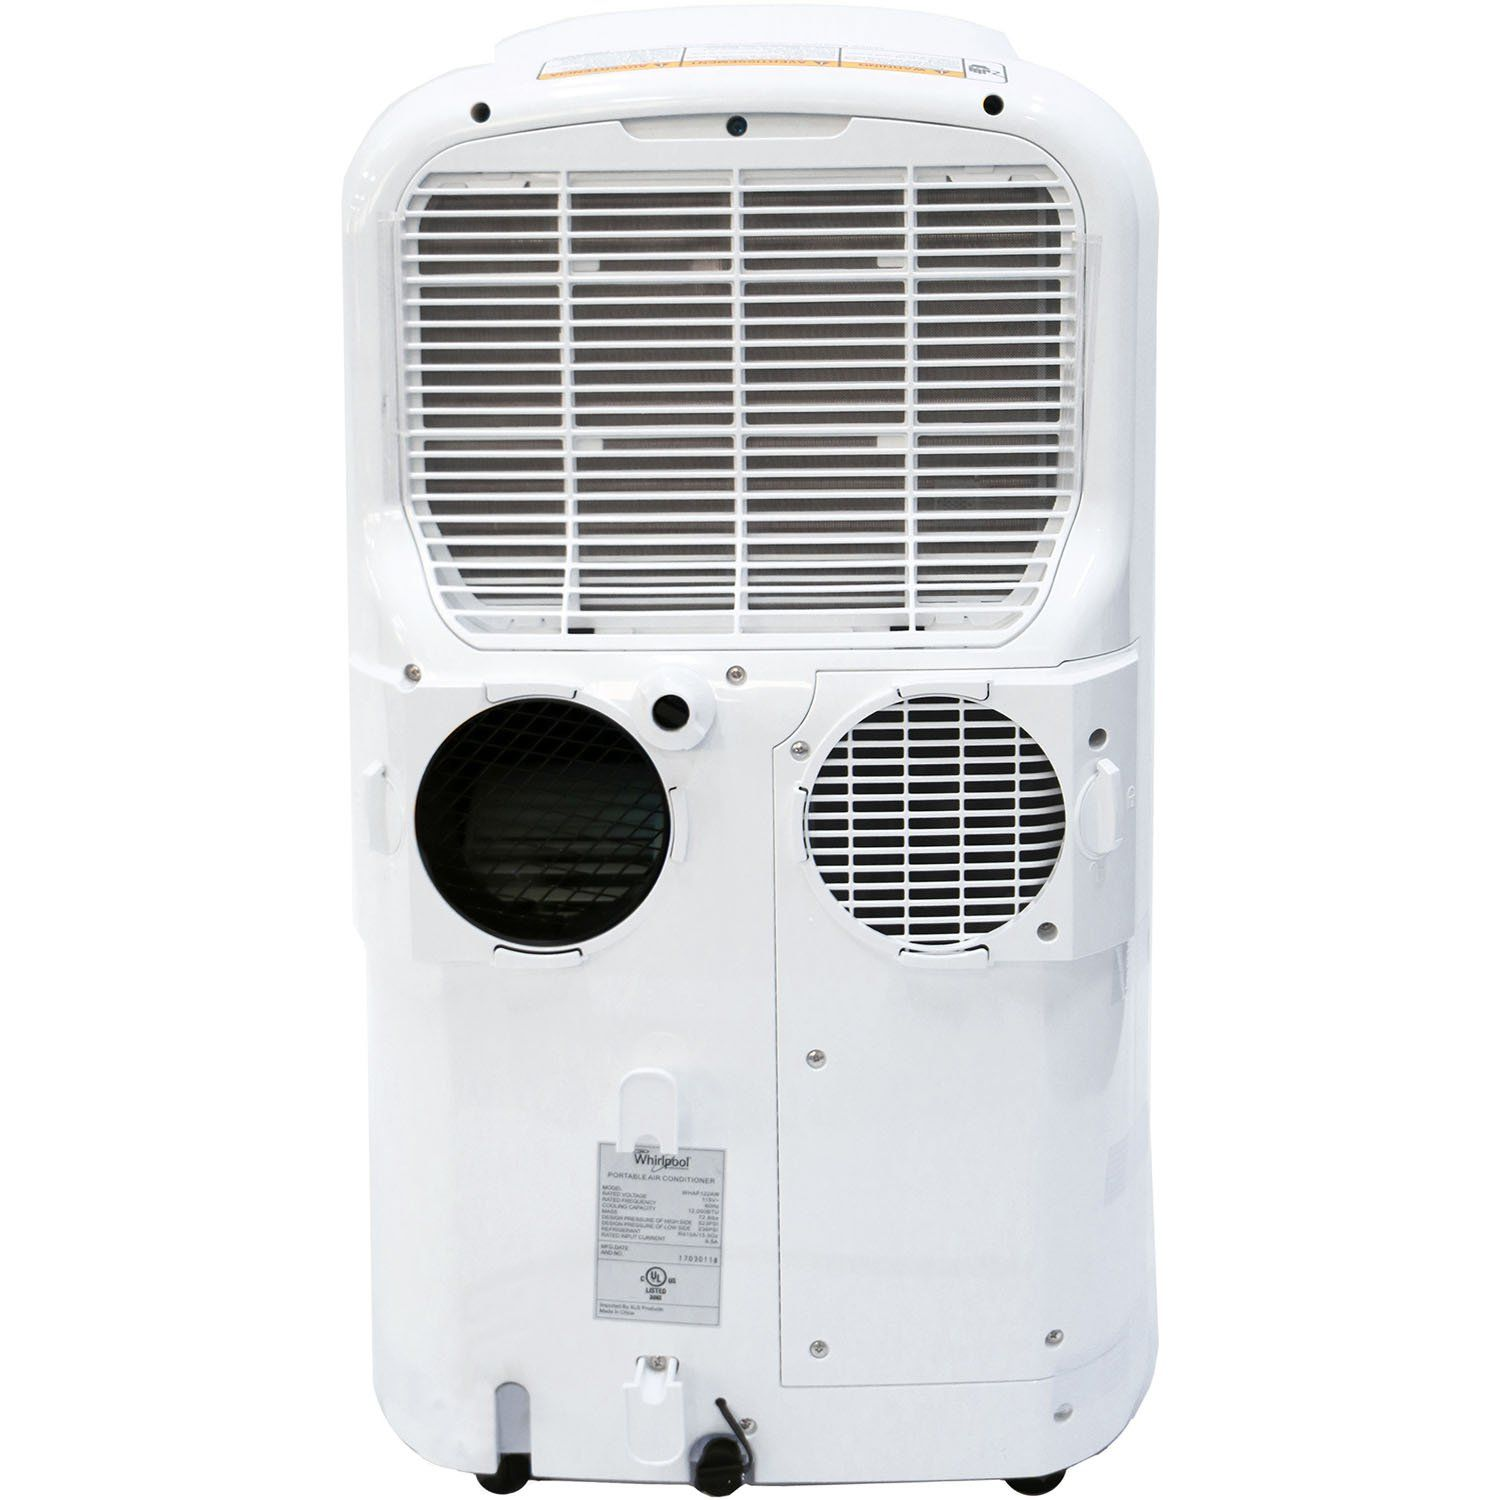 Whirlpool 14000 Btu Dualexhaust Portable Air Conditioner With Remote Control In White For More Information V Portable Air Conditioner Portable Ac Portable